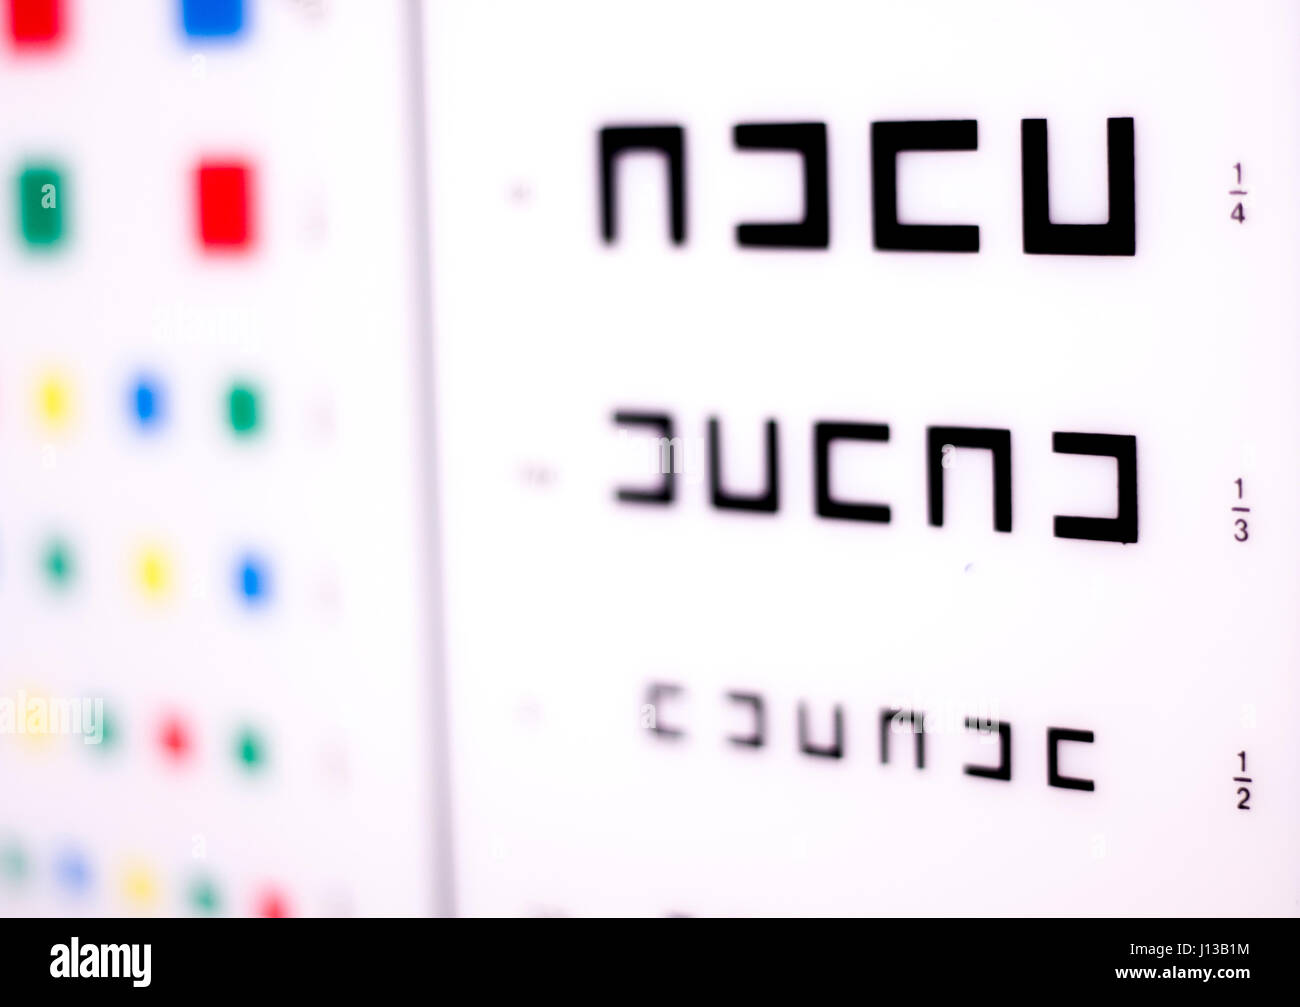 Opticians ophthalmology and optometry eye test chart to test sight opticians ophthalmology and optometry eye test chart to test sight and vision for patients with eyesight issues geenschuldenfo Image collections